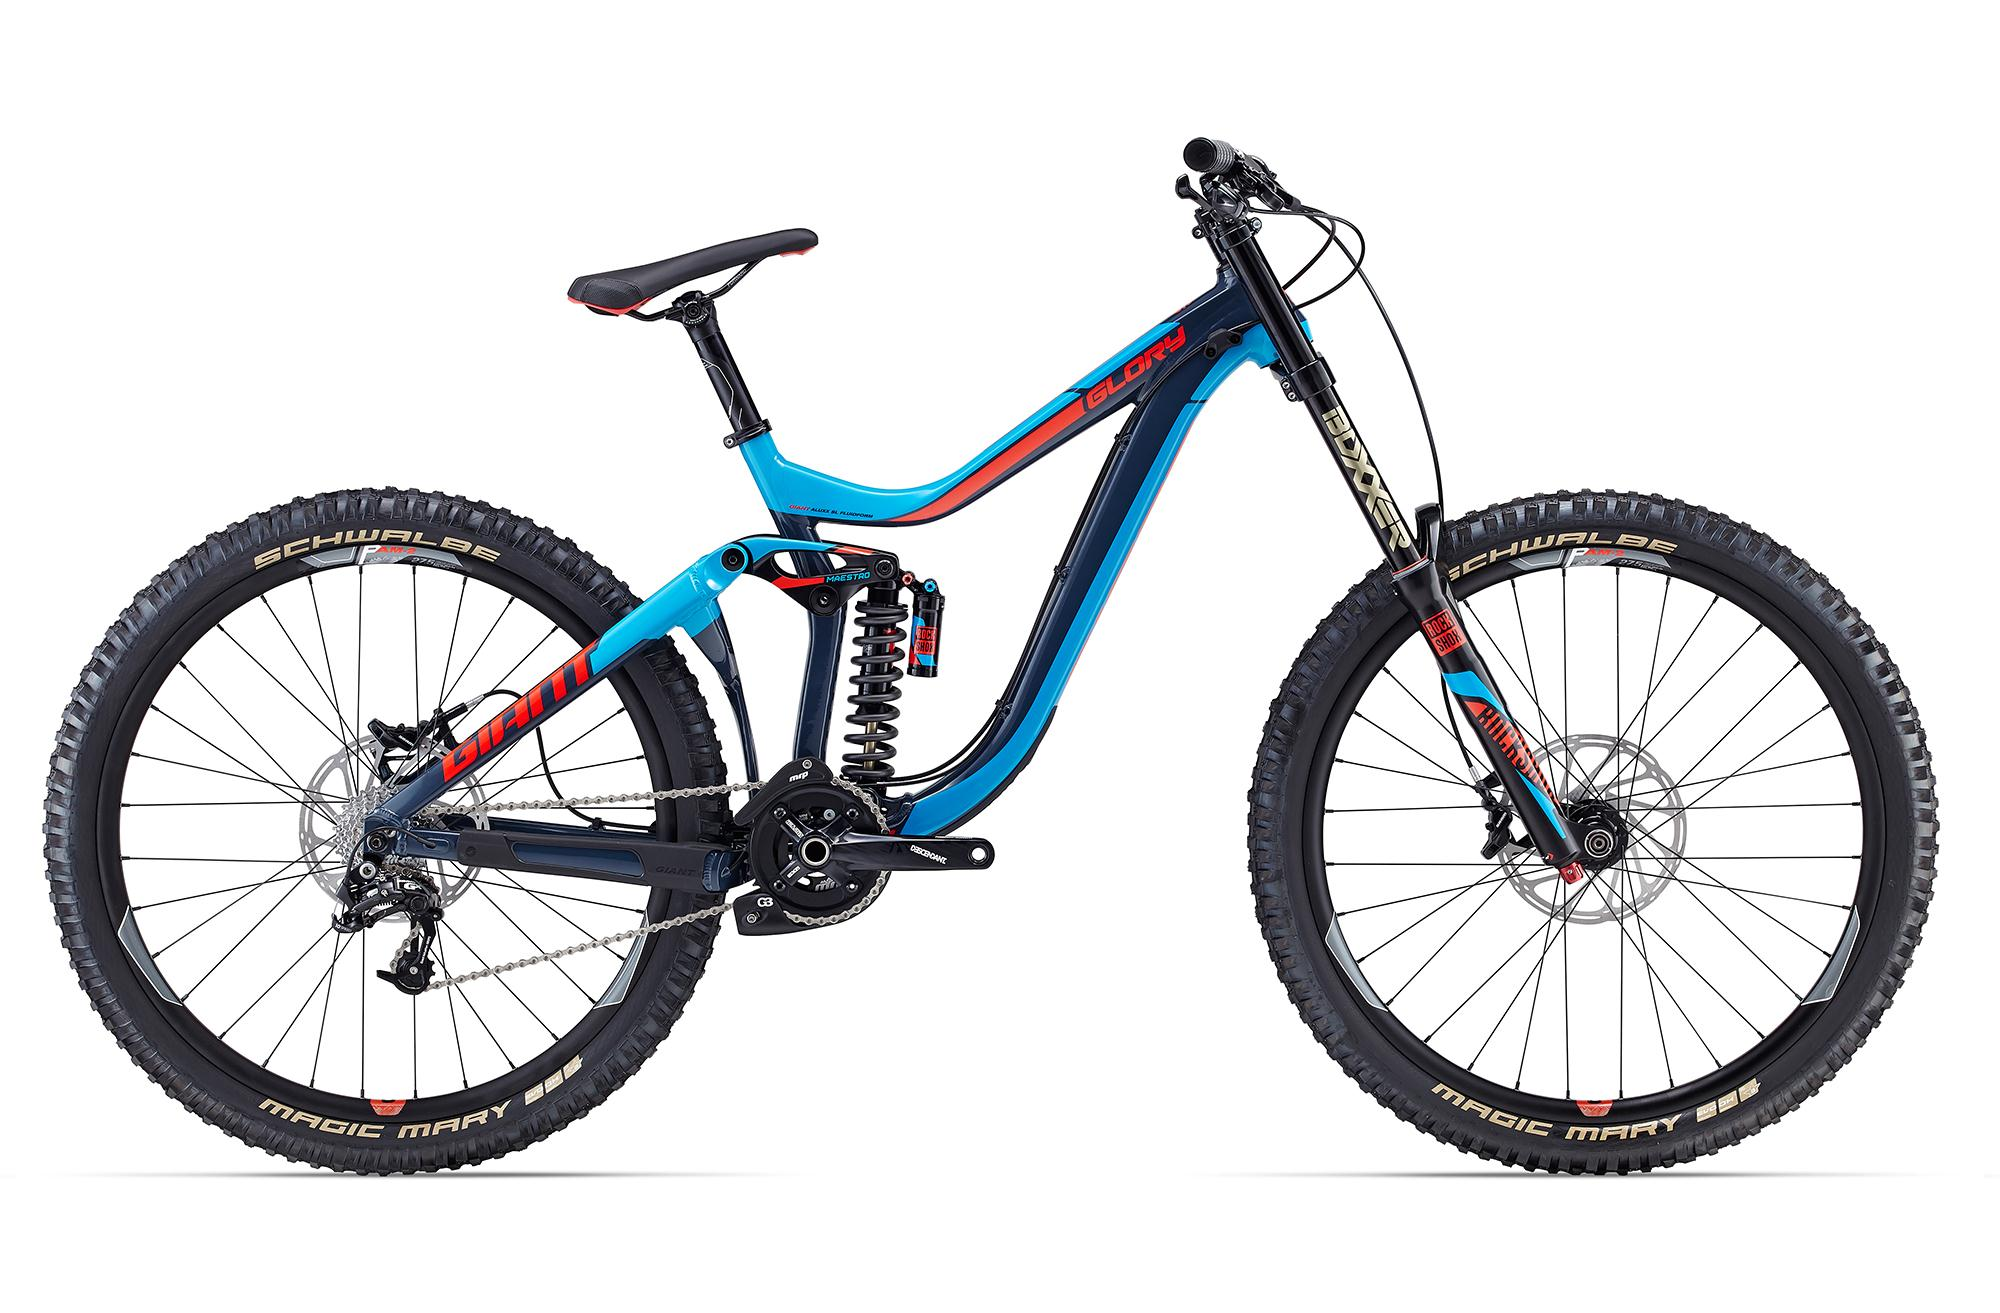 2016 GIANT GLORY ADVANCED 27.5 DOWNHILL MOUNTAIN BIKE - H2 Gear